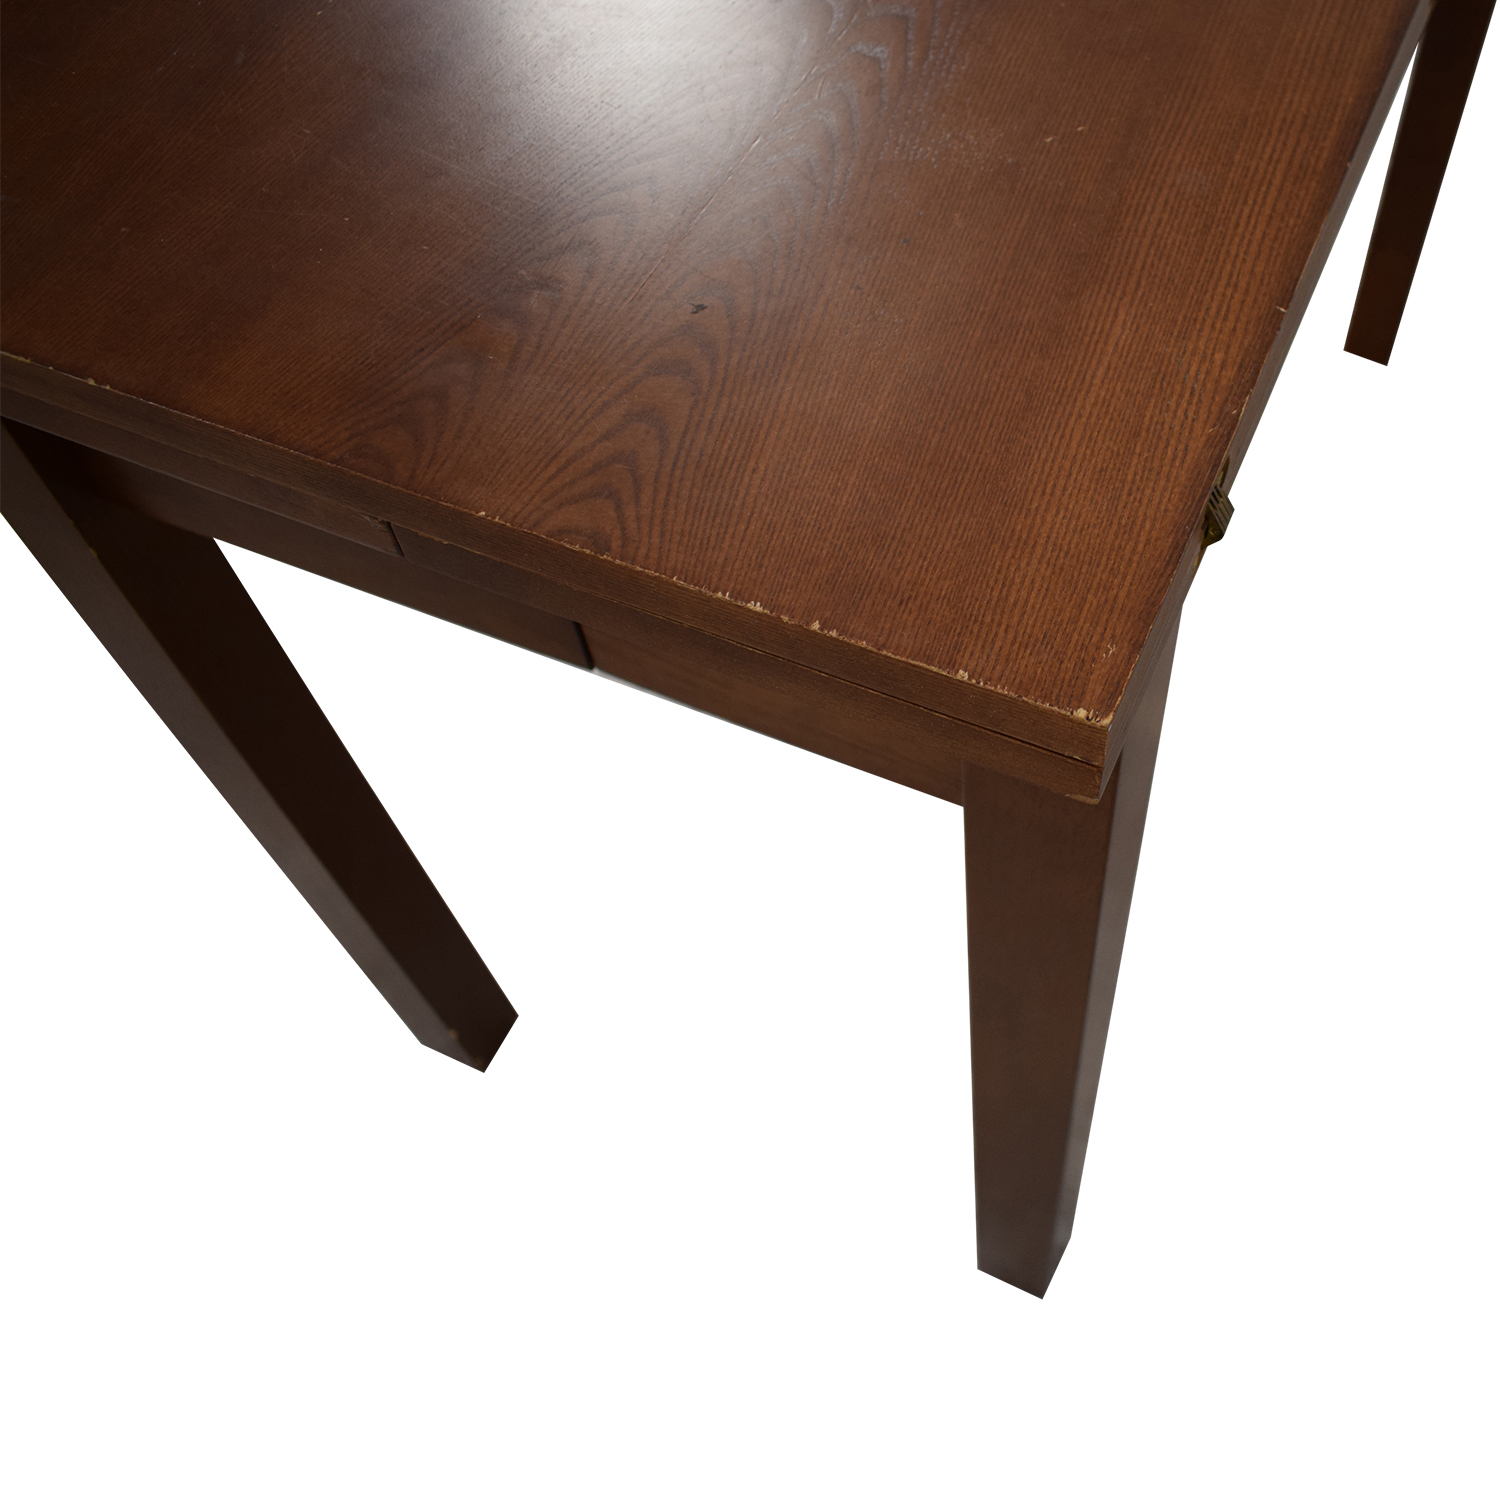 Extendable Table with Drawers brown